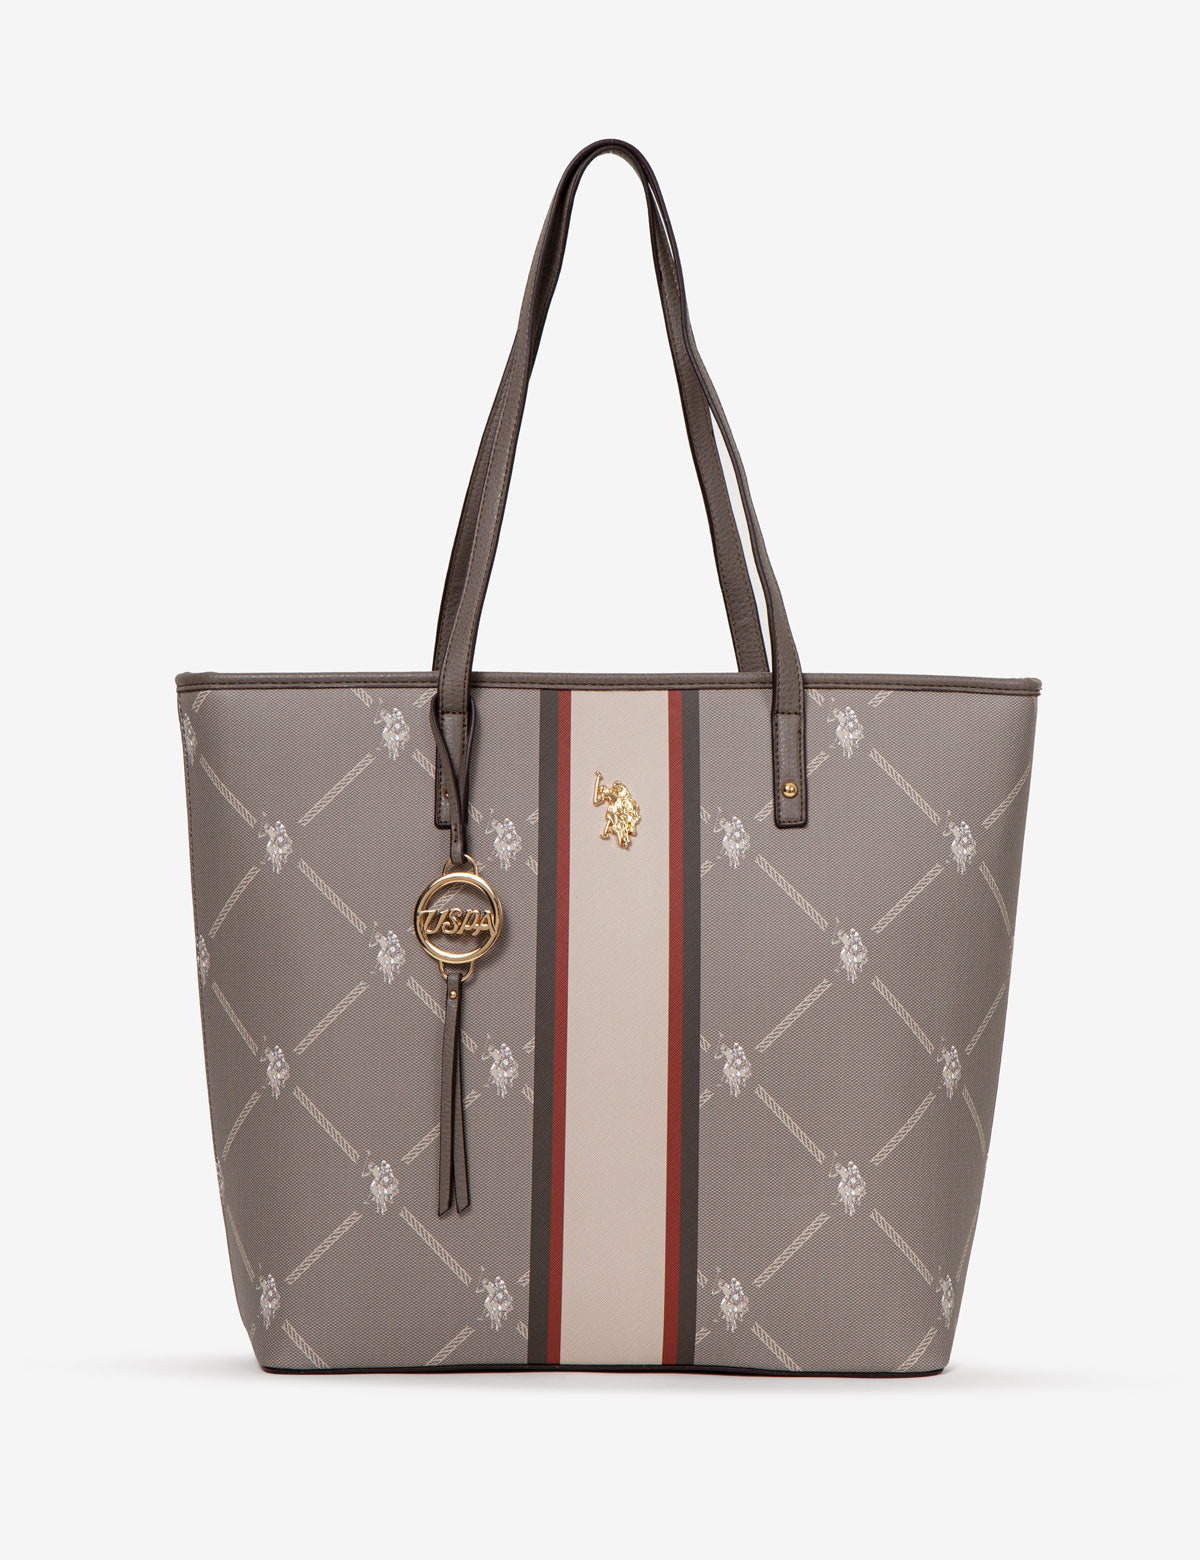 SIGNATURE TOTE BAG - U.S. Polo Assn.